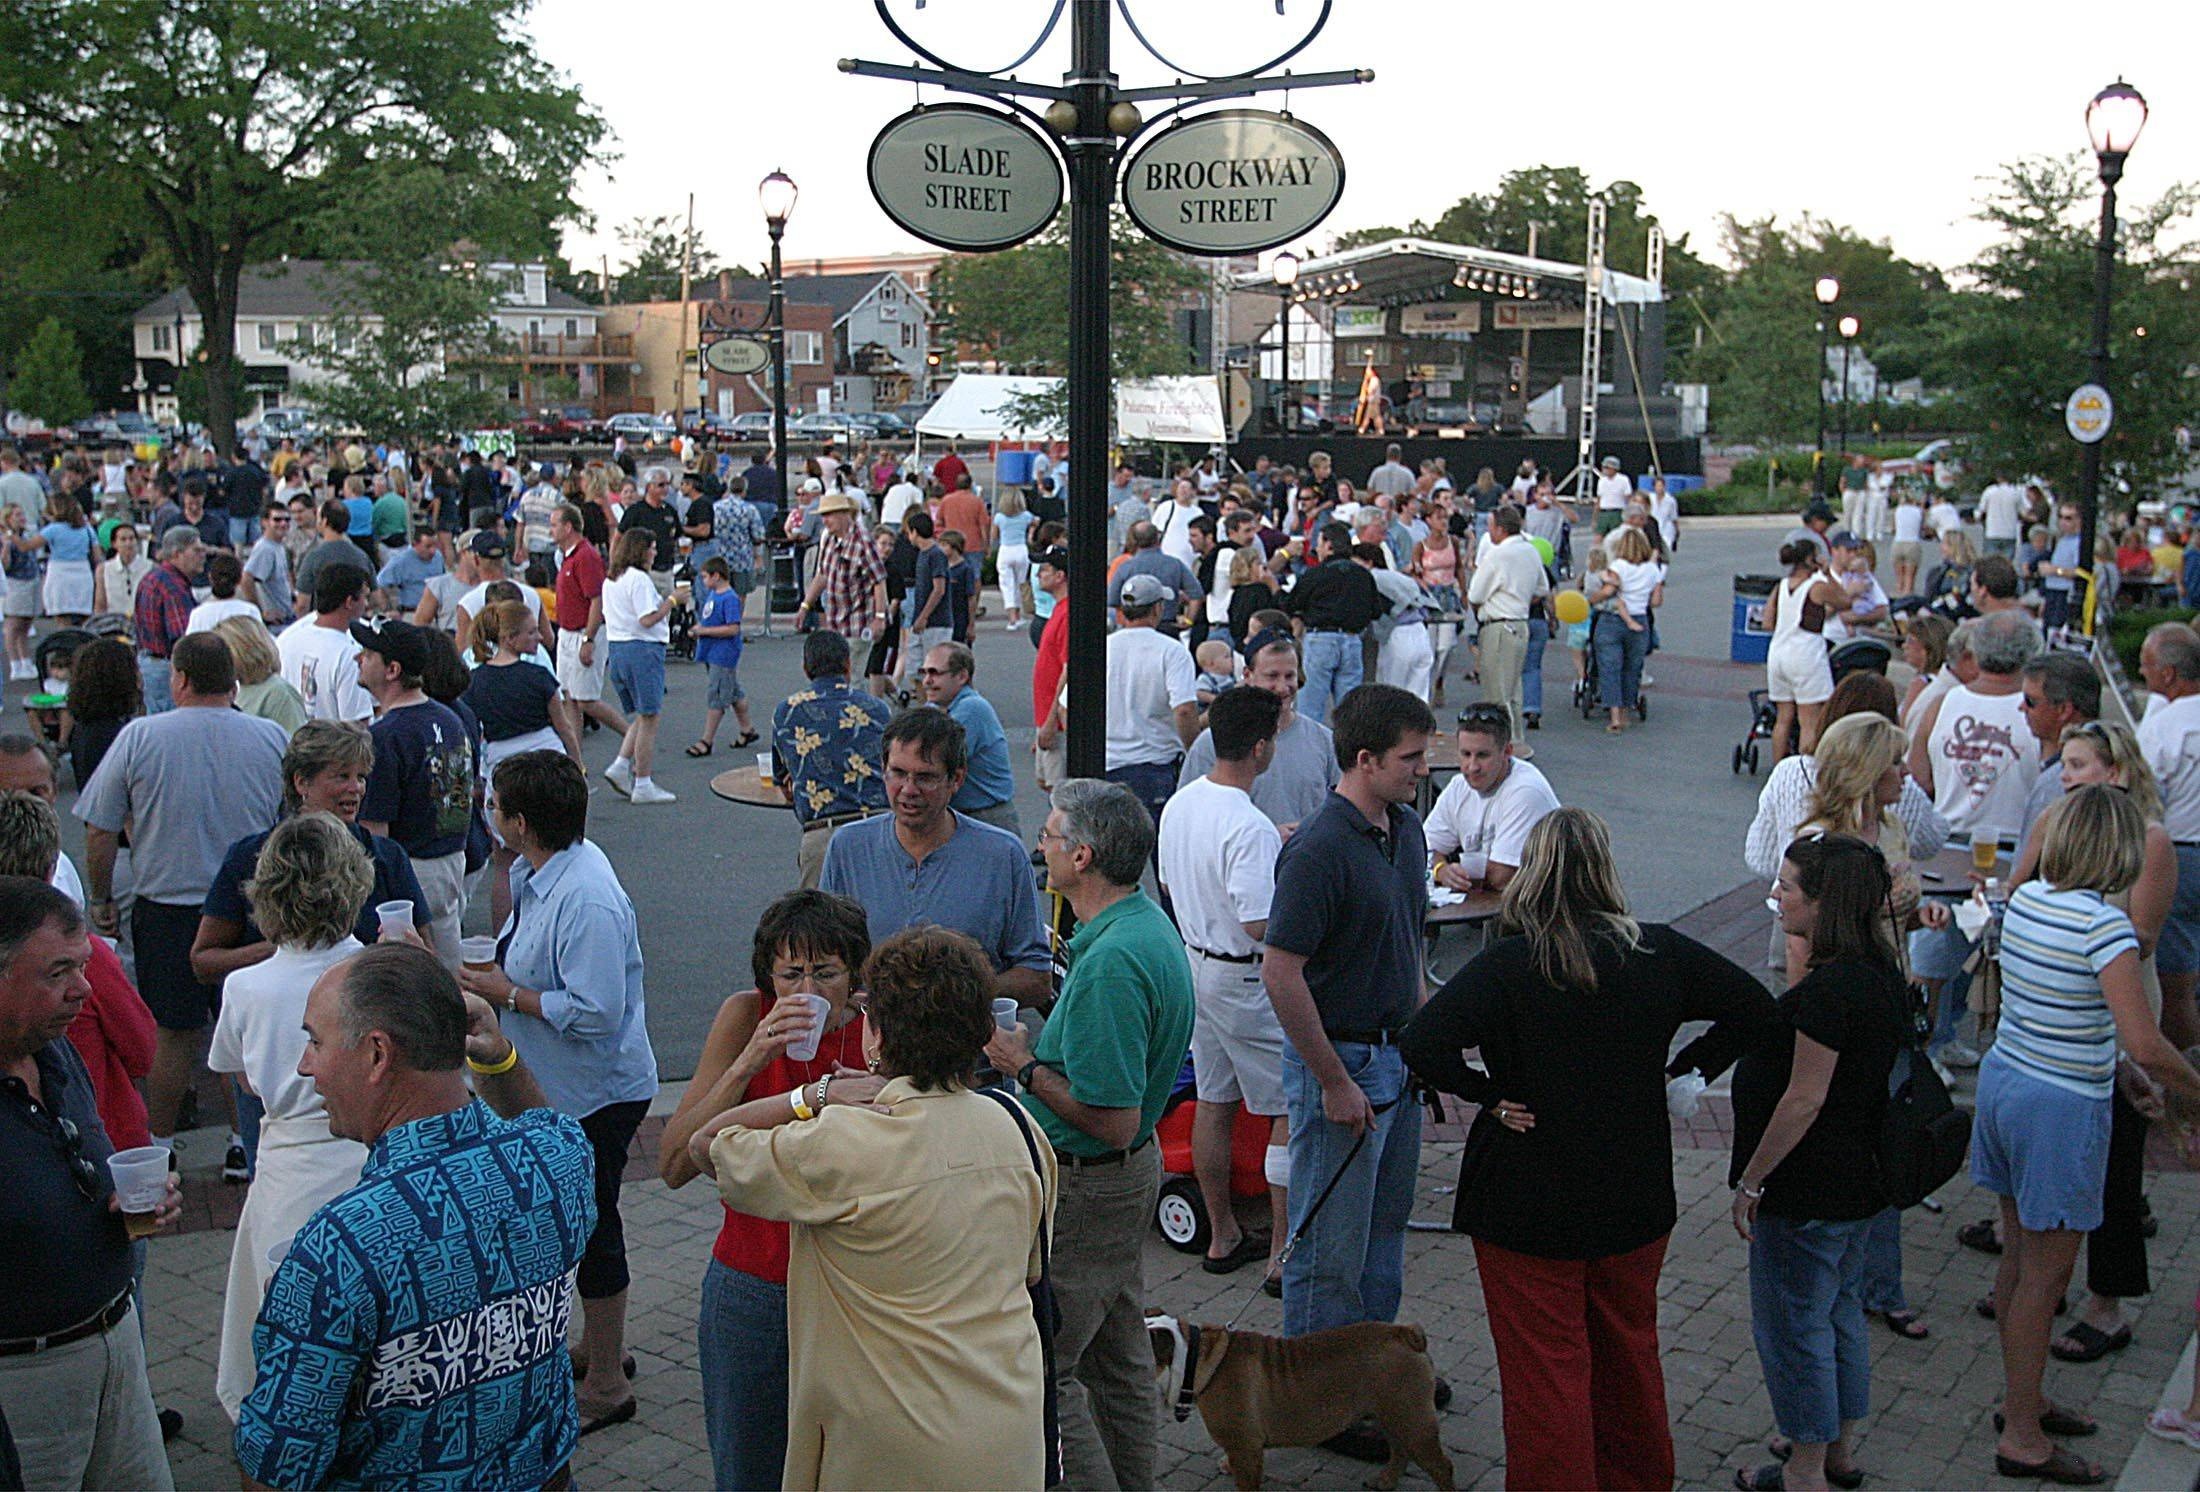 Downtown Palatine is full of festgoers.